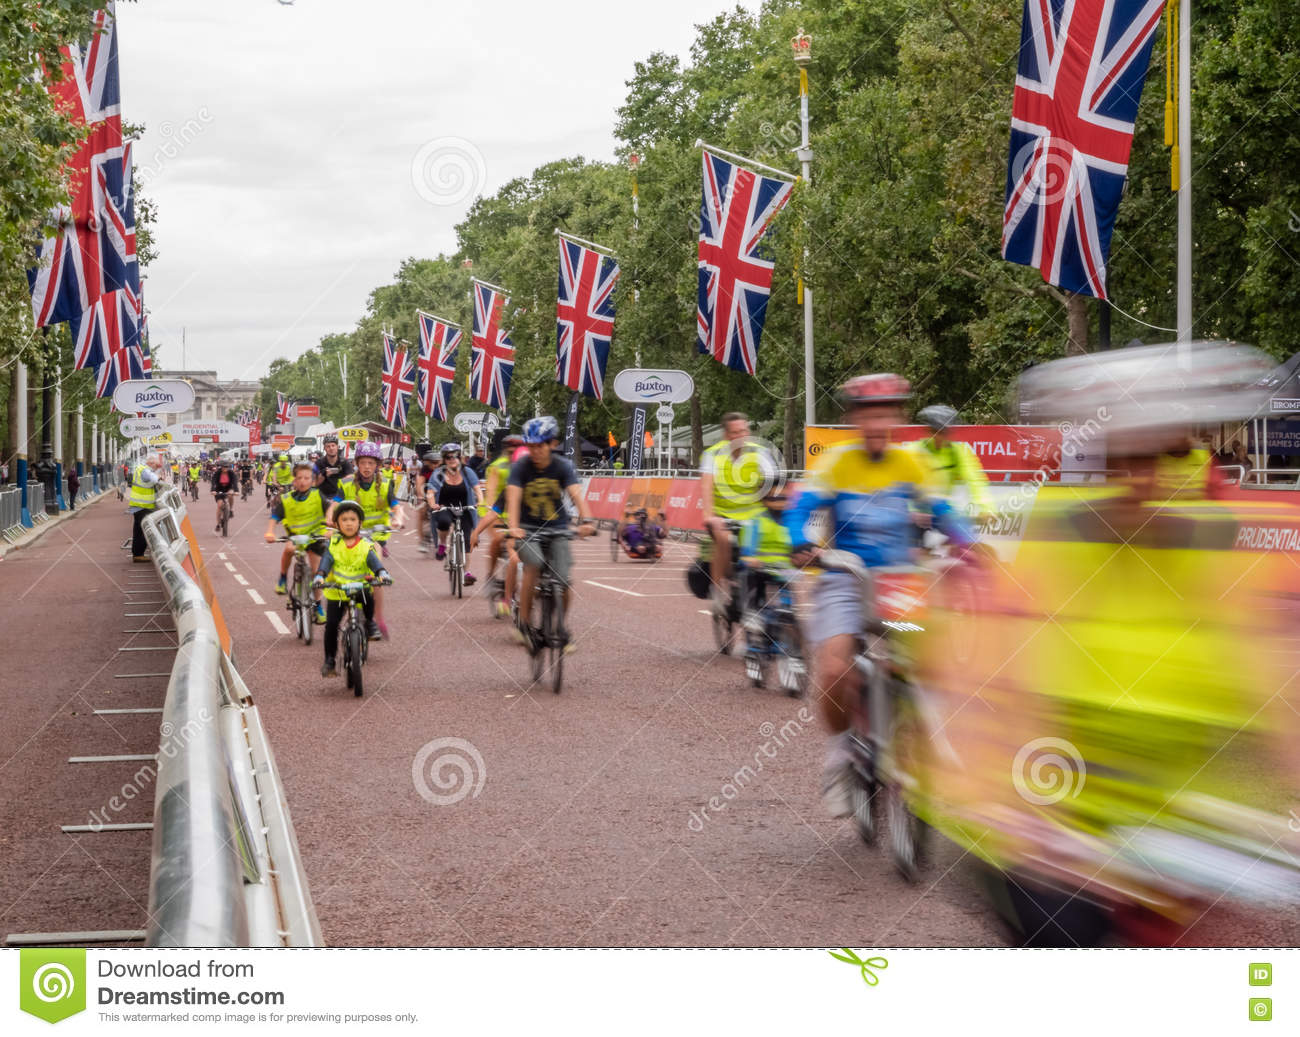 London Prudential Bicycle Ride Editorial Stock Image - Image